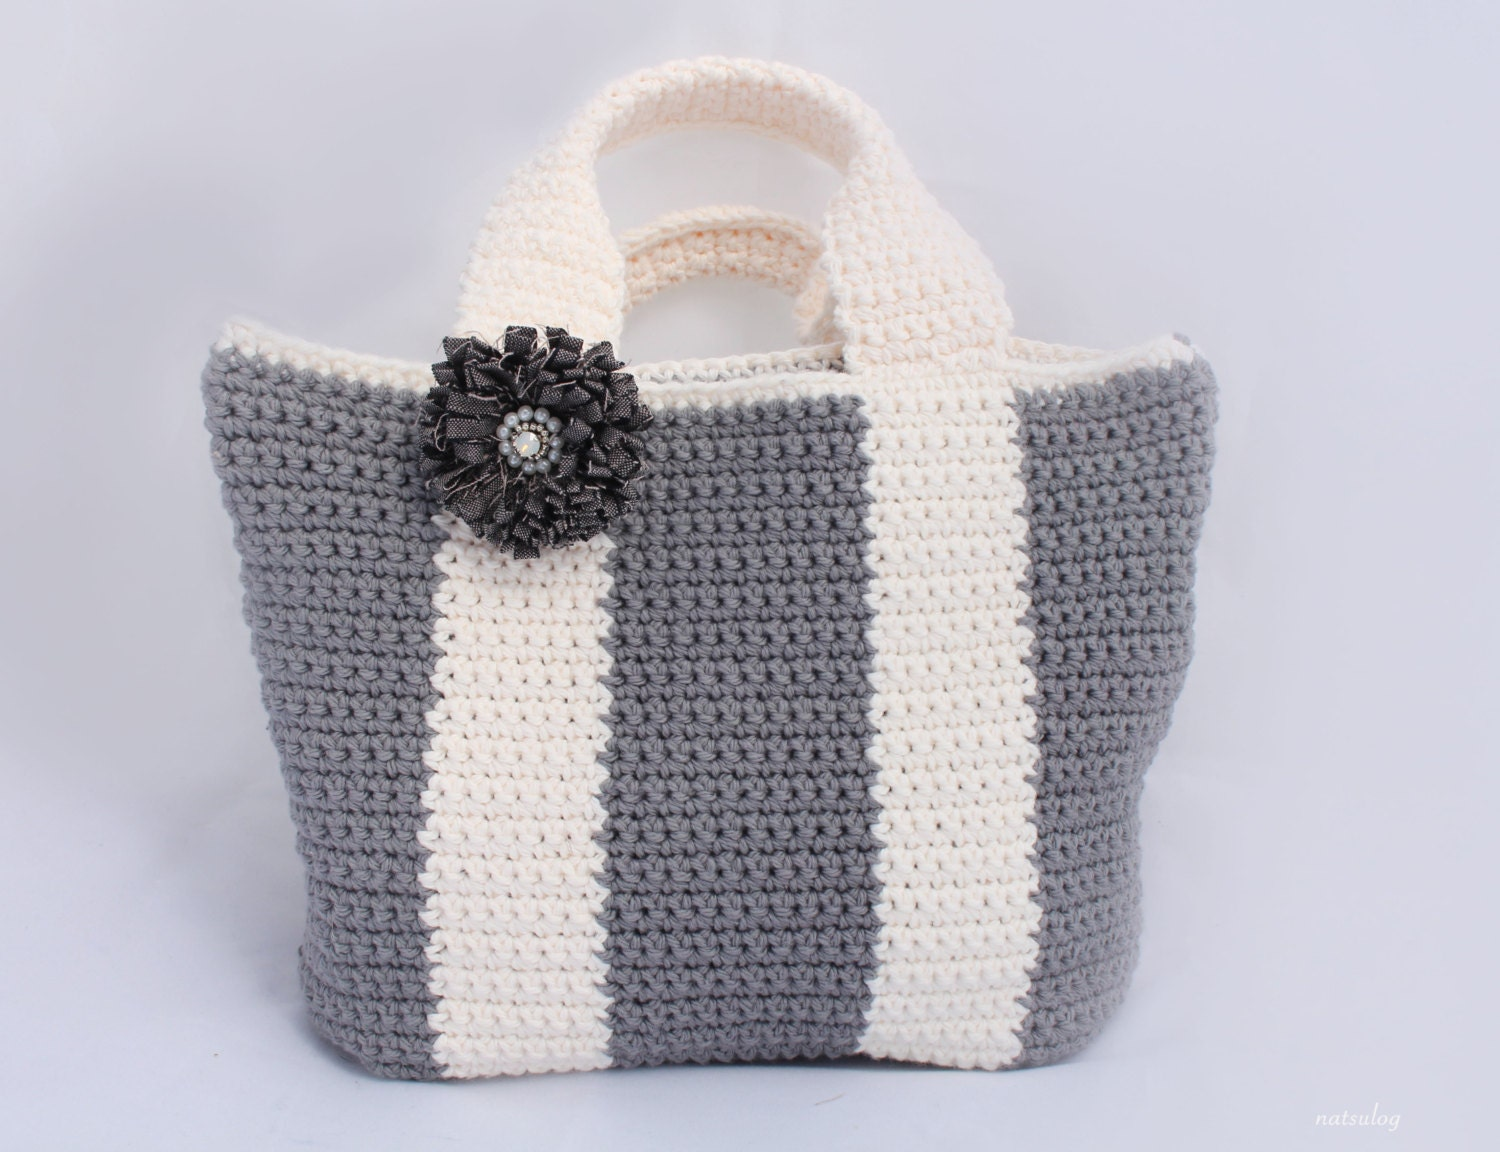 Simple Crochet Bag Pattern : Crochet simple tote bag pattern Bicolor bag Crochet by Natsulog